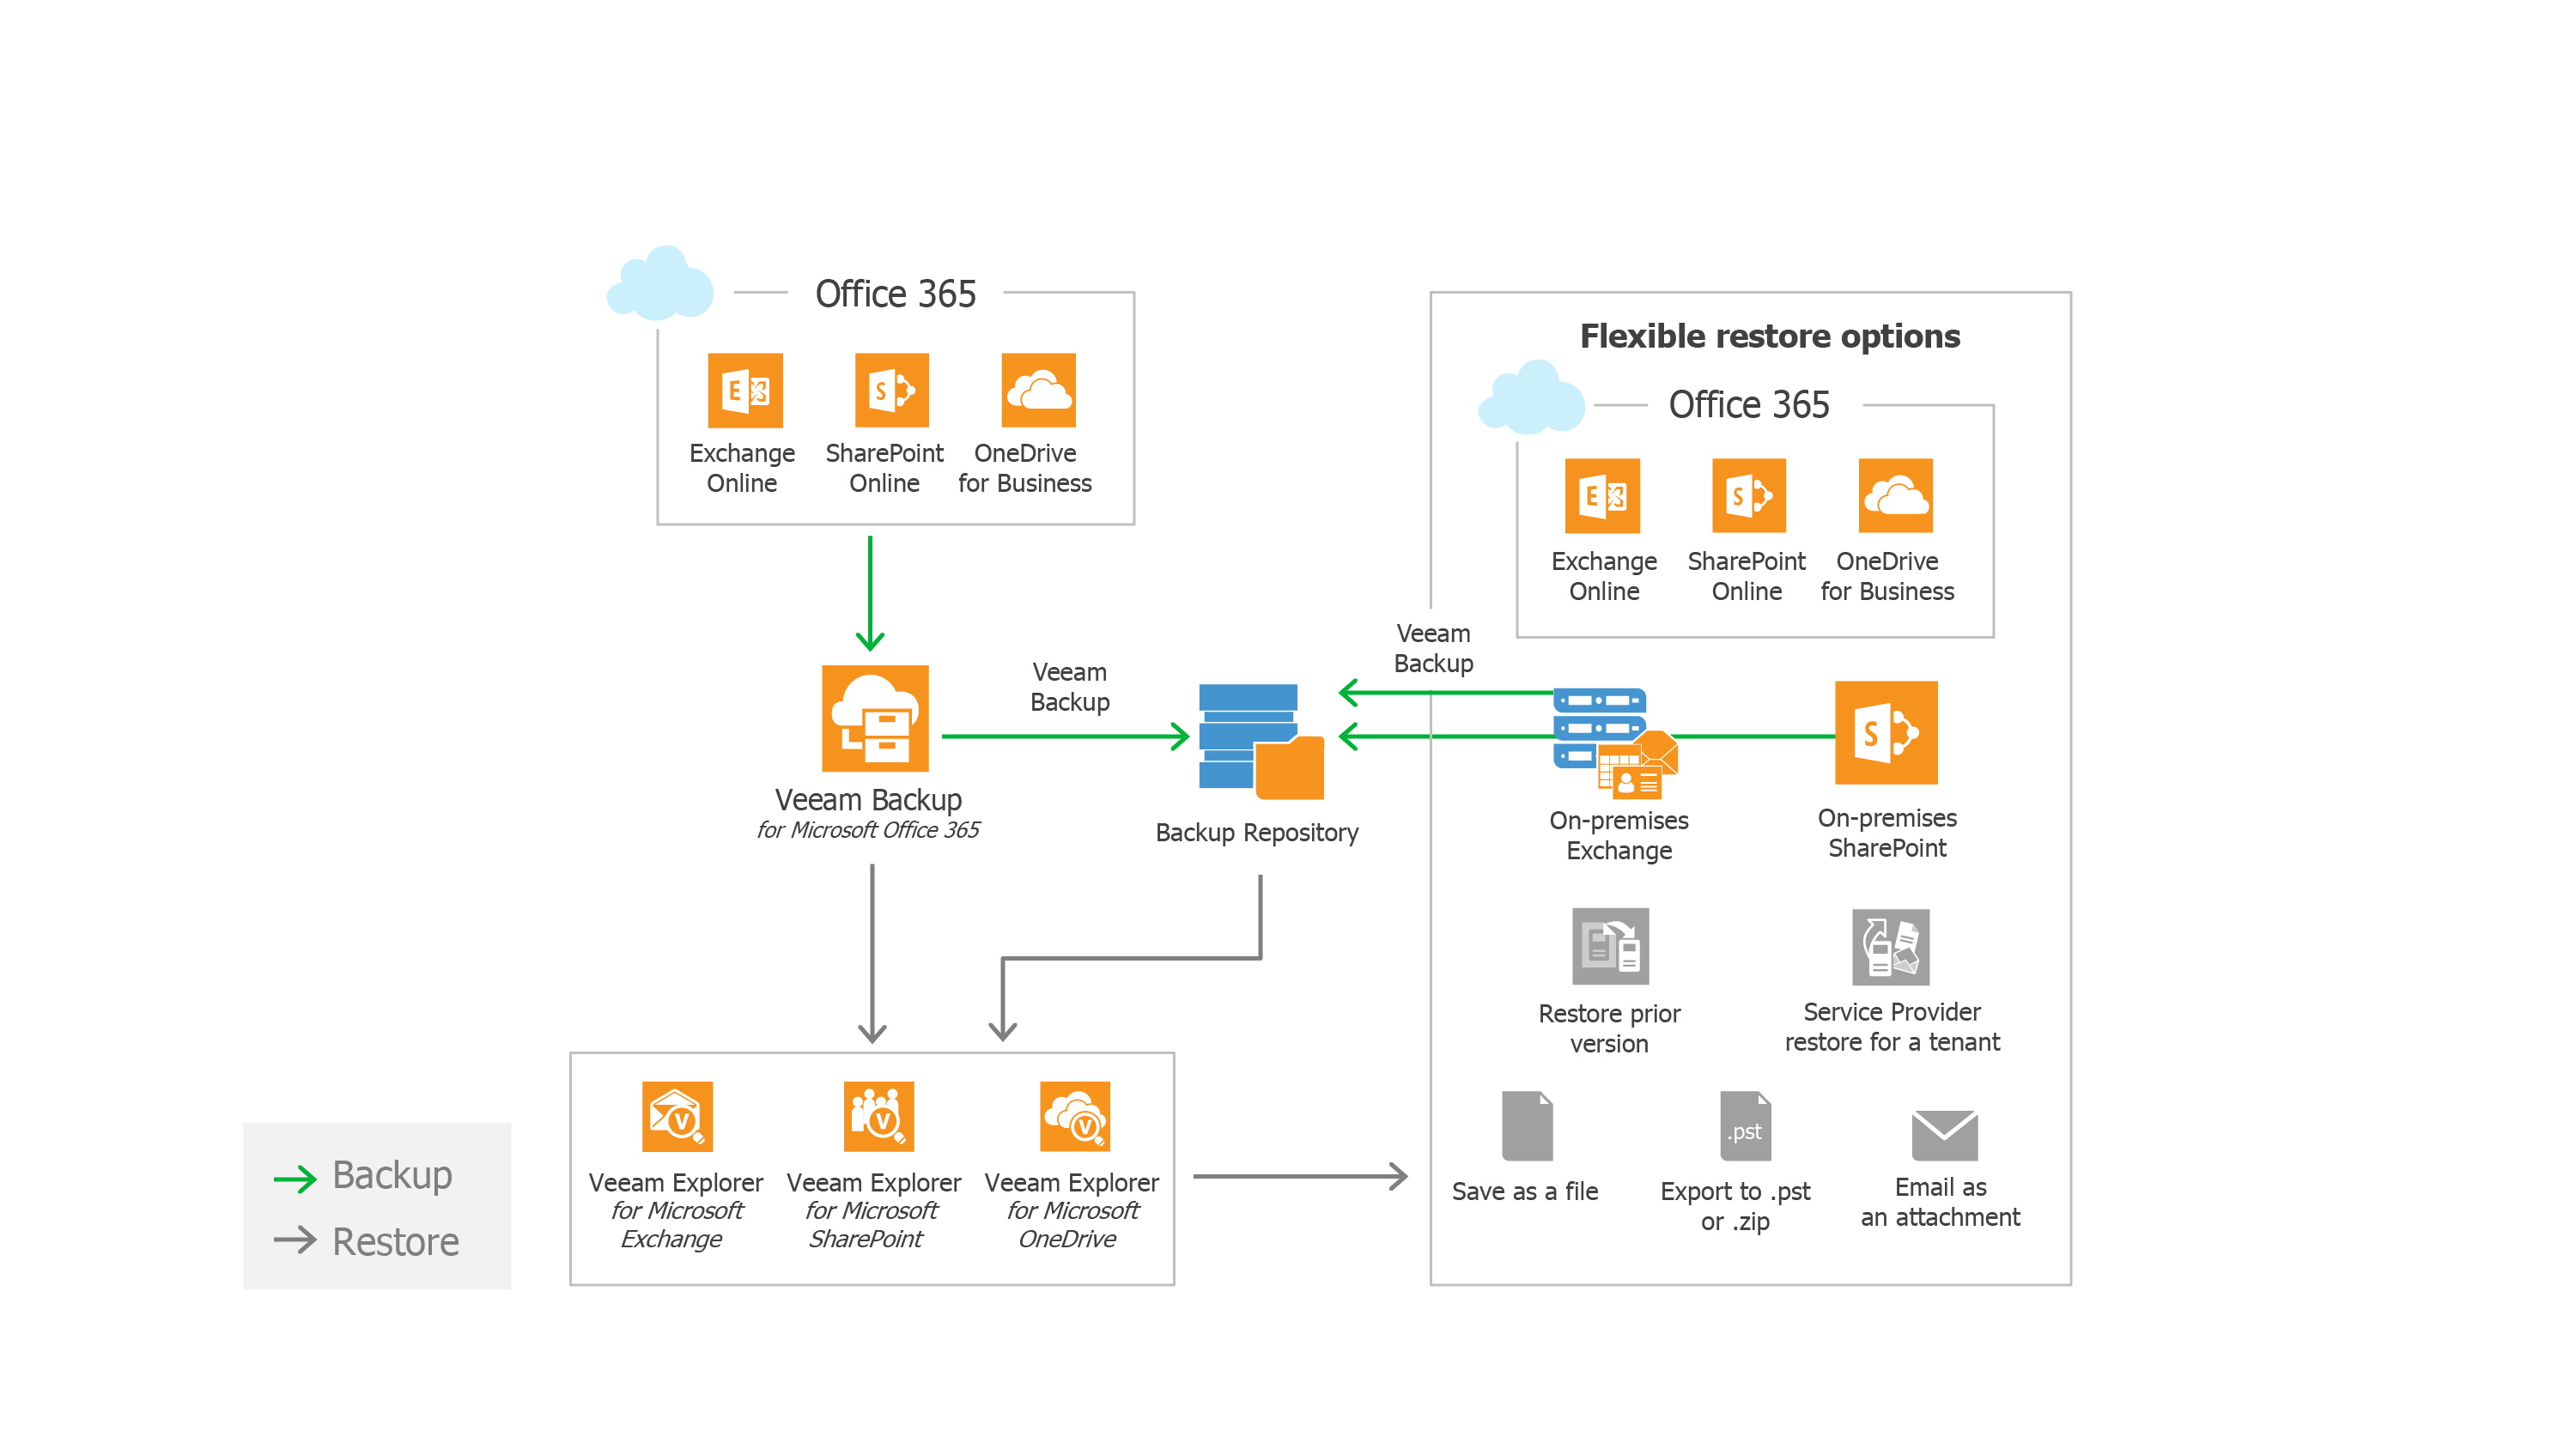 Backup Office 365 and on-premises Exchange to restore user productivity